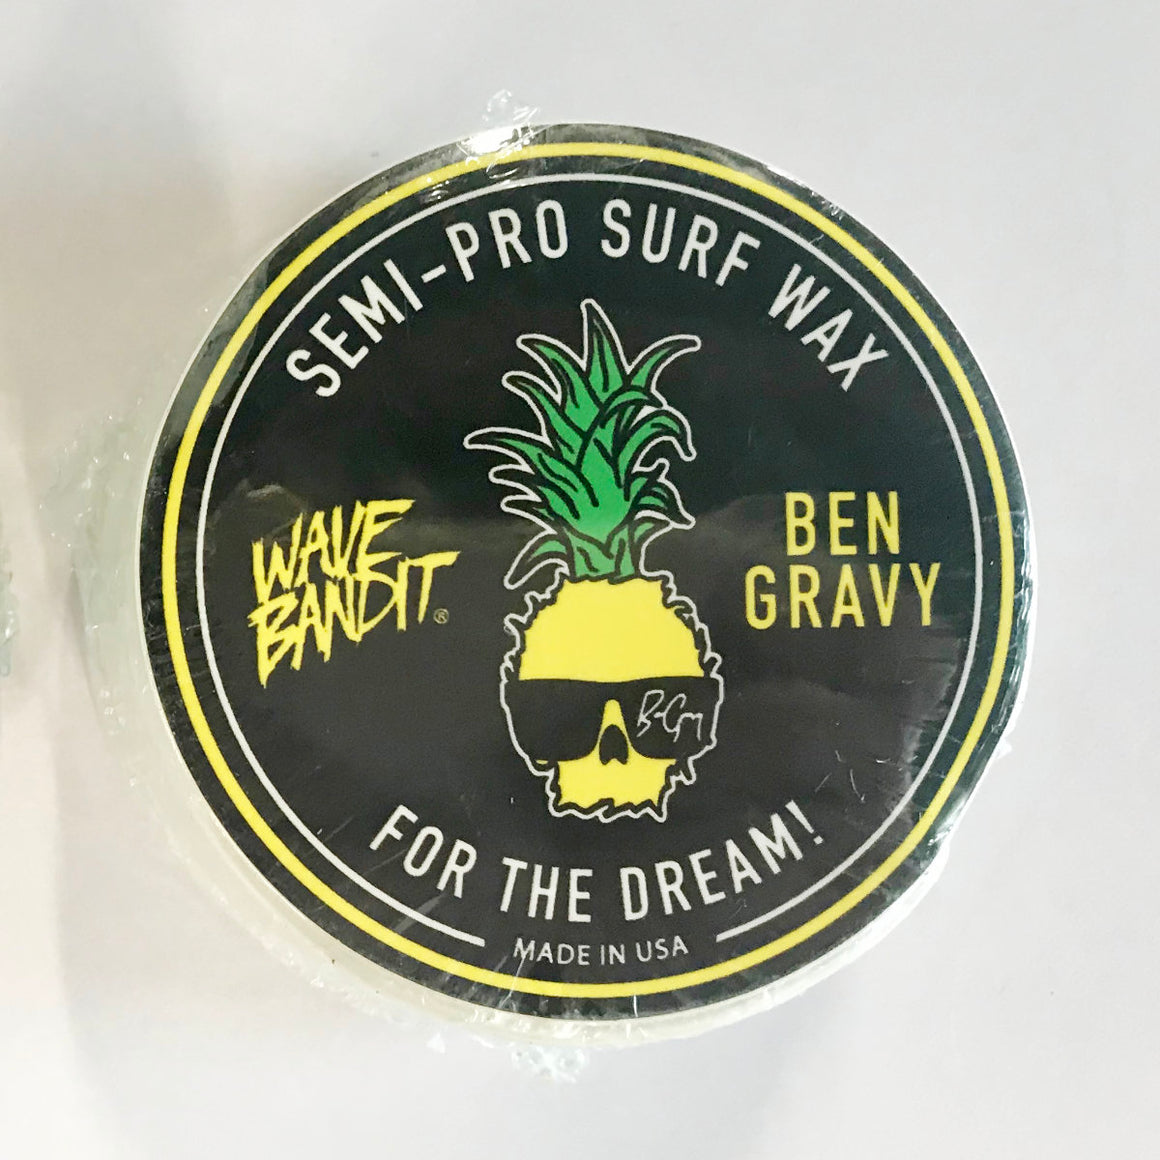 Surfboard Wax - Catch Surf Wax (and free sticker)